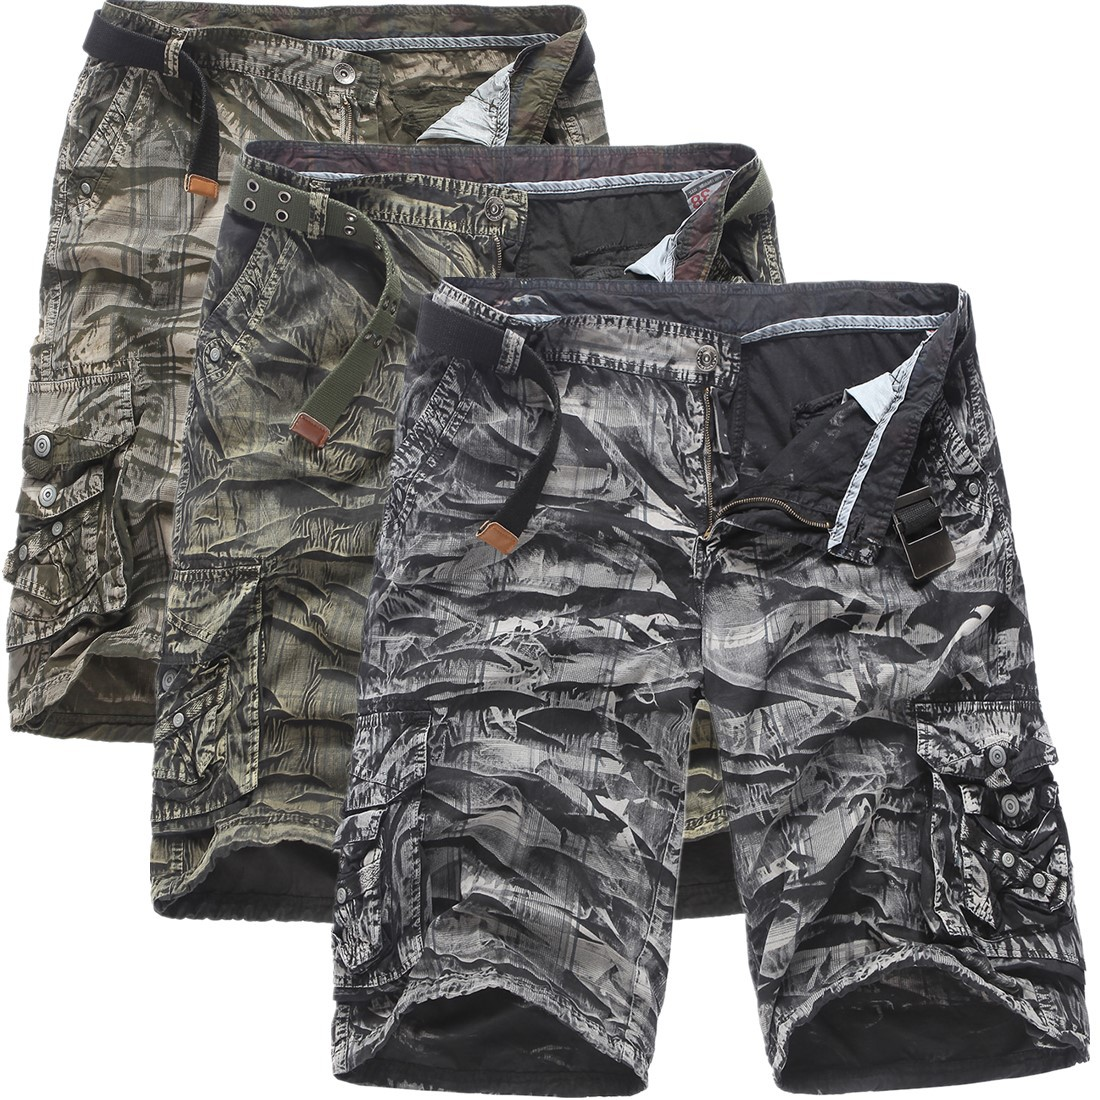 Summer outfit camouflage men's pure cotton loose shorts G360